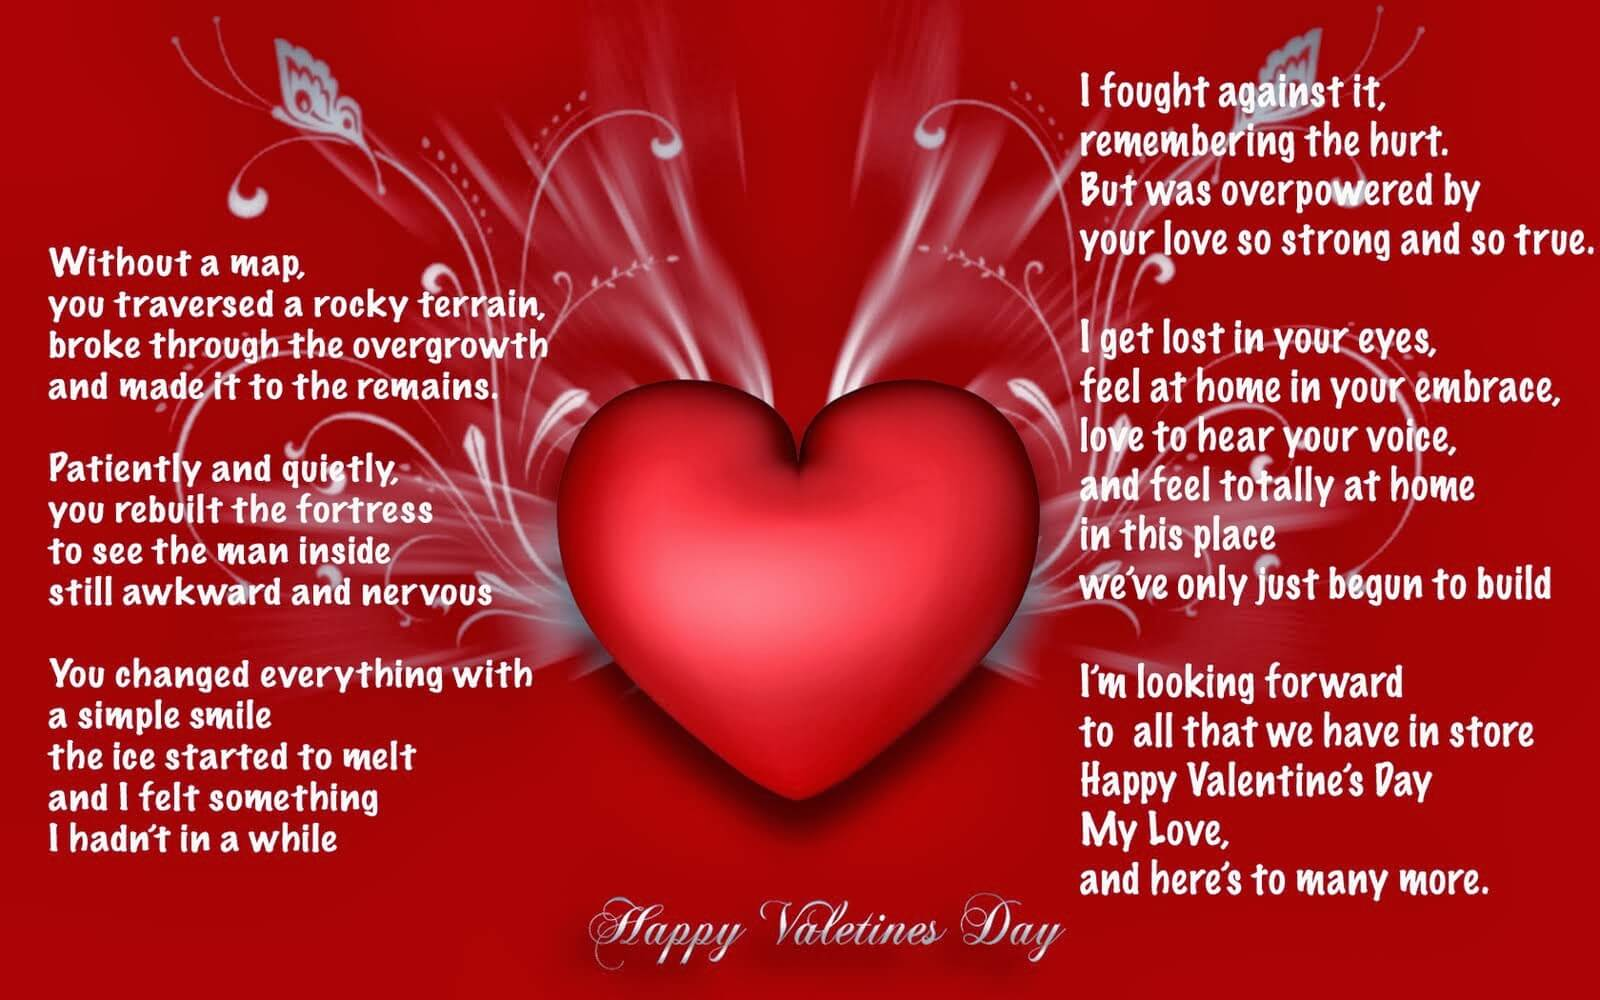 romantic valentines day poems for him